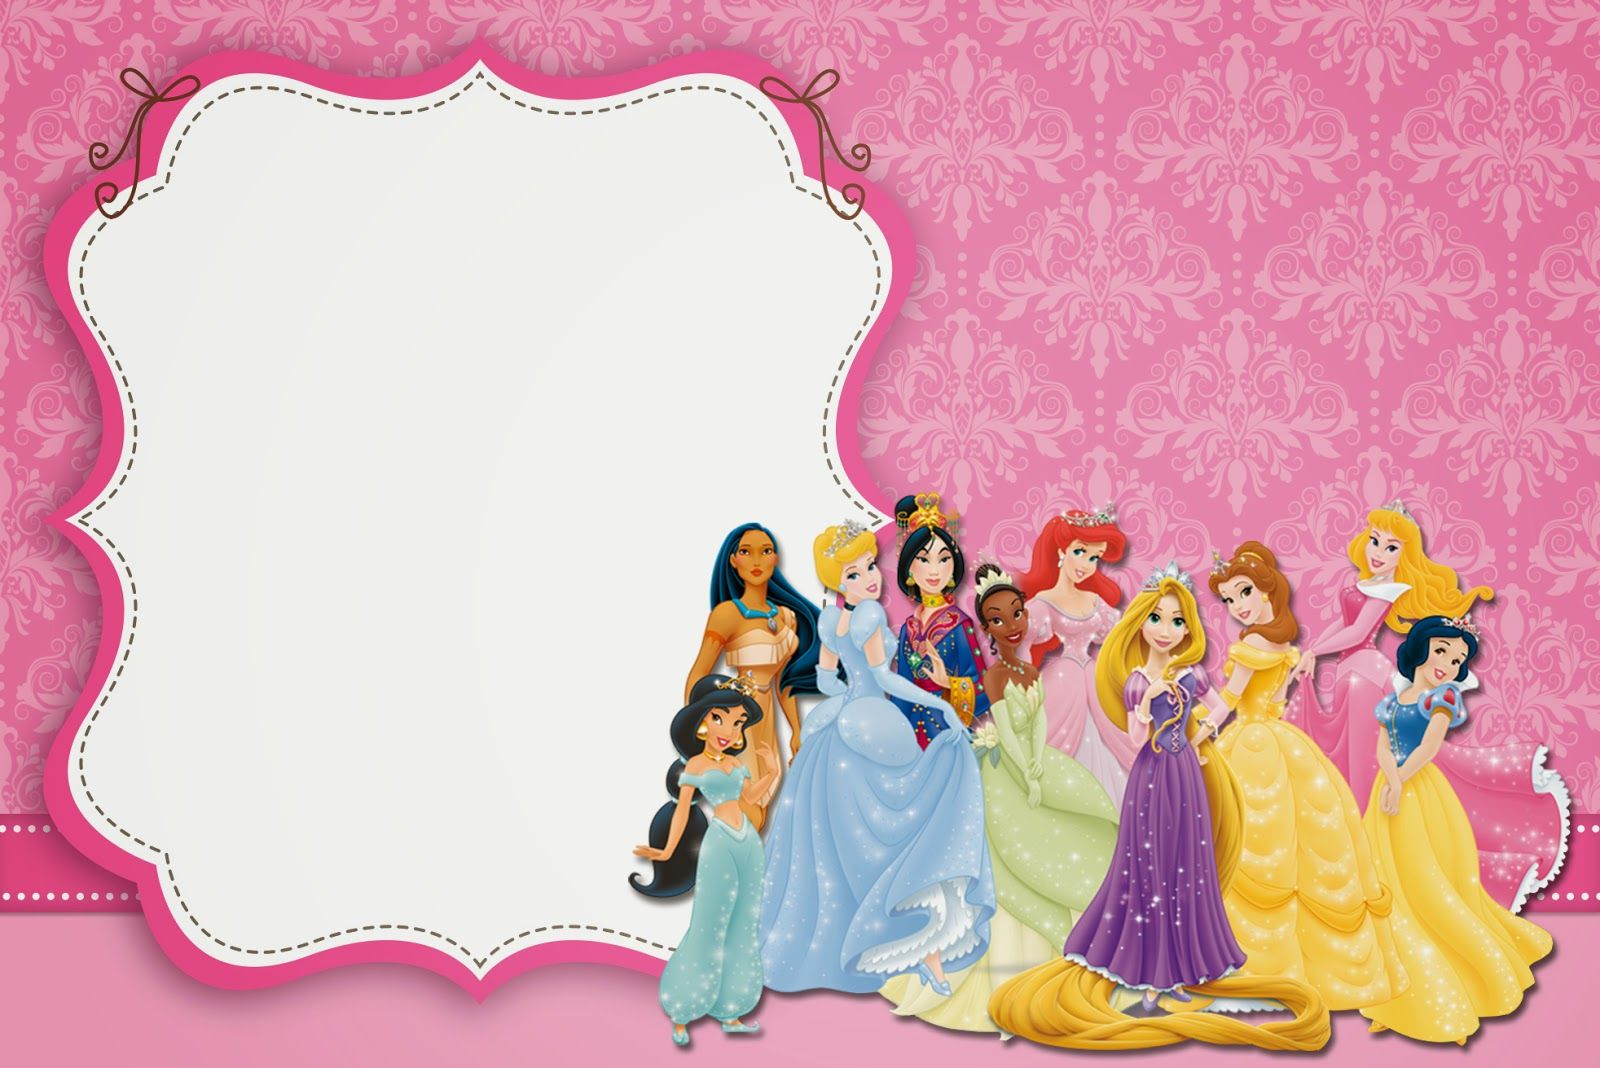 disney princess party free printable party invitations is it for parties is - Disney Princess Party Invitations